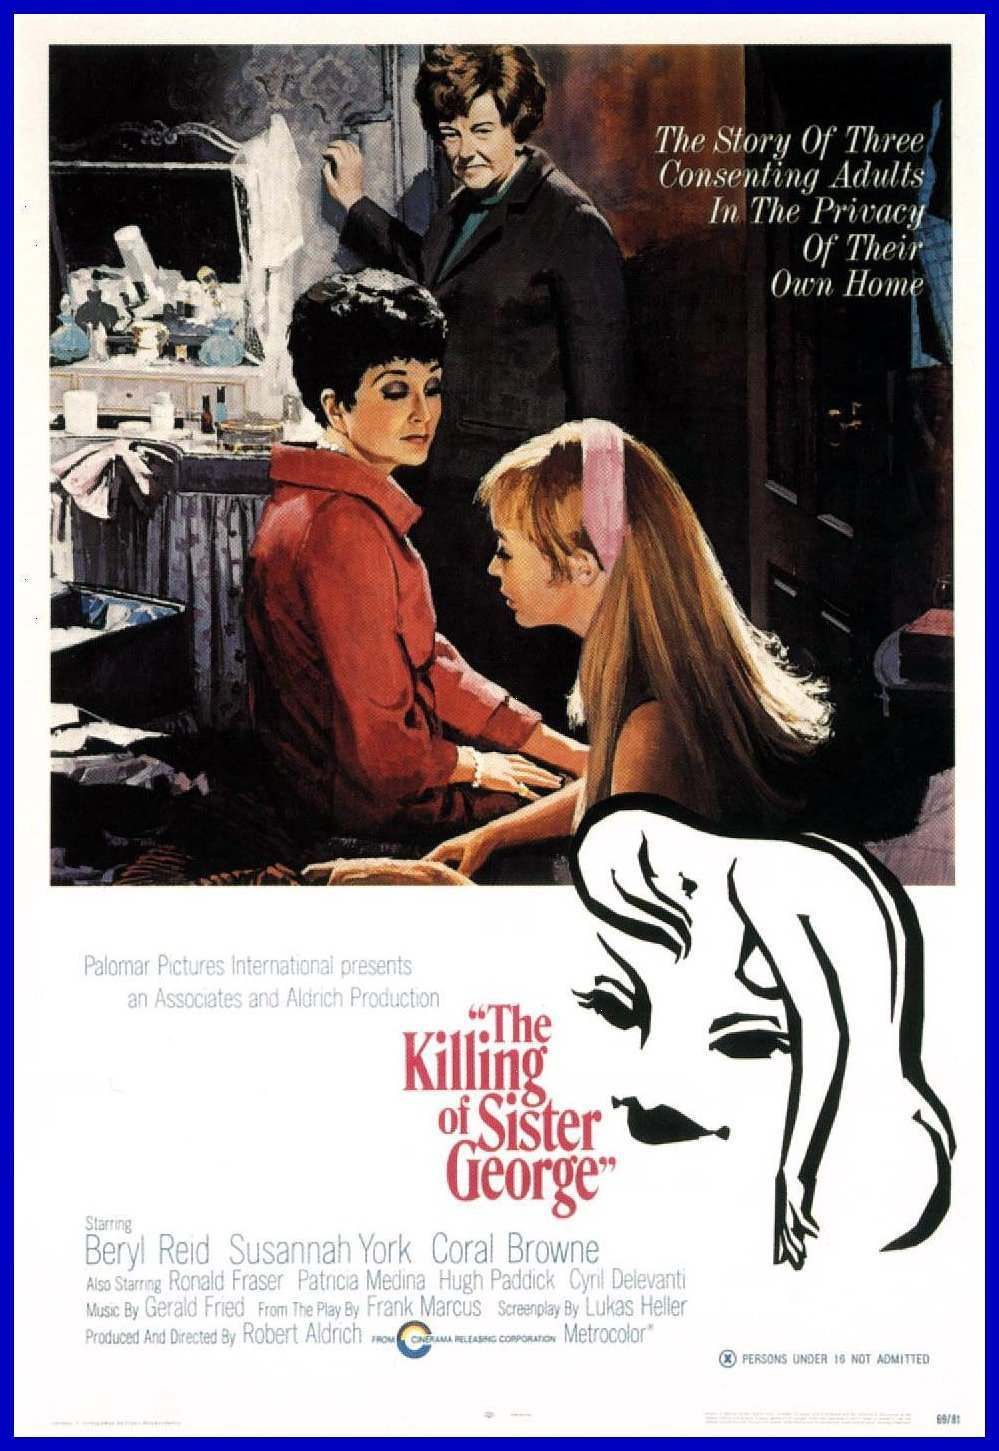 The Killing of Sister George was released in 1968.